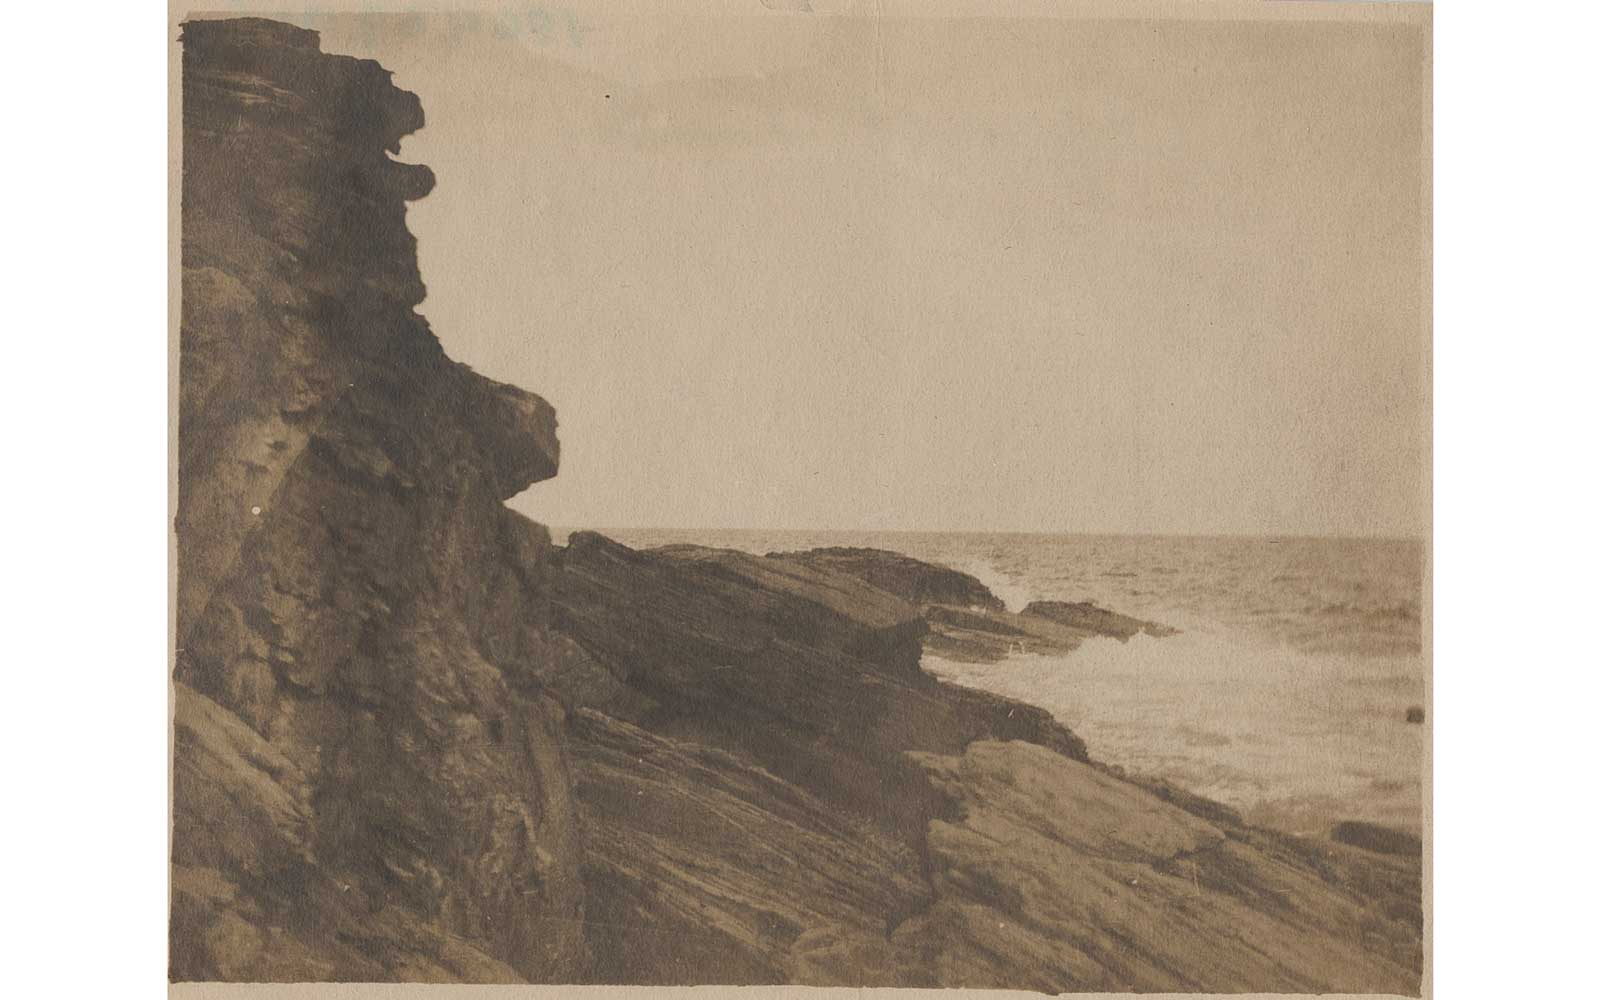 Cliff at Prout's Neck, ca. 1885, albumen silver print by Winslow Homer. Bowdoin College Museum of Art, Brunswick, Maine. The-